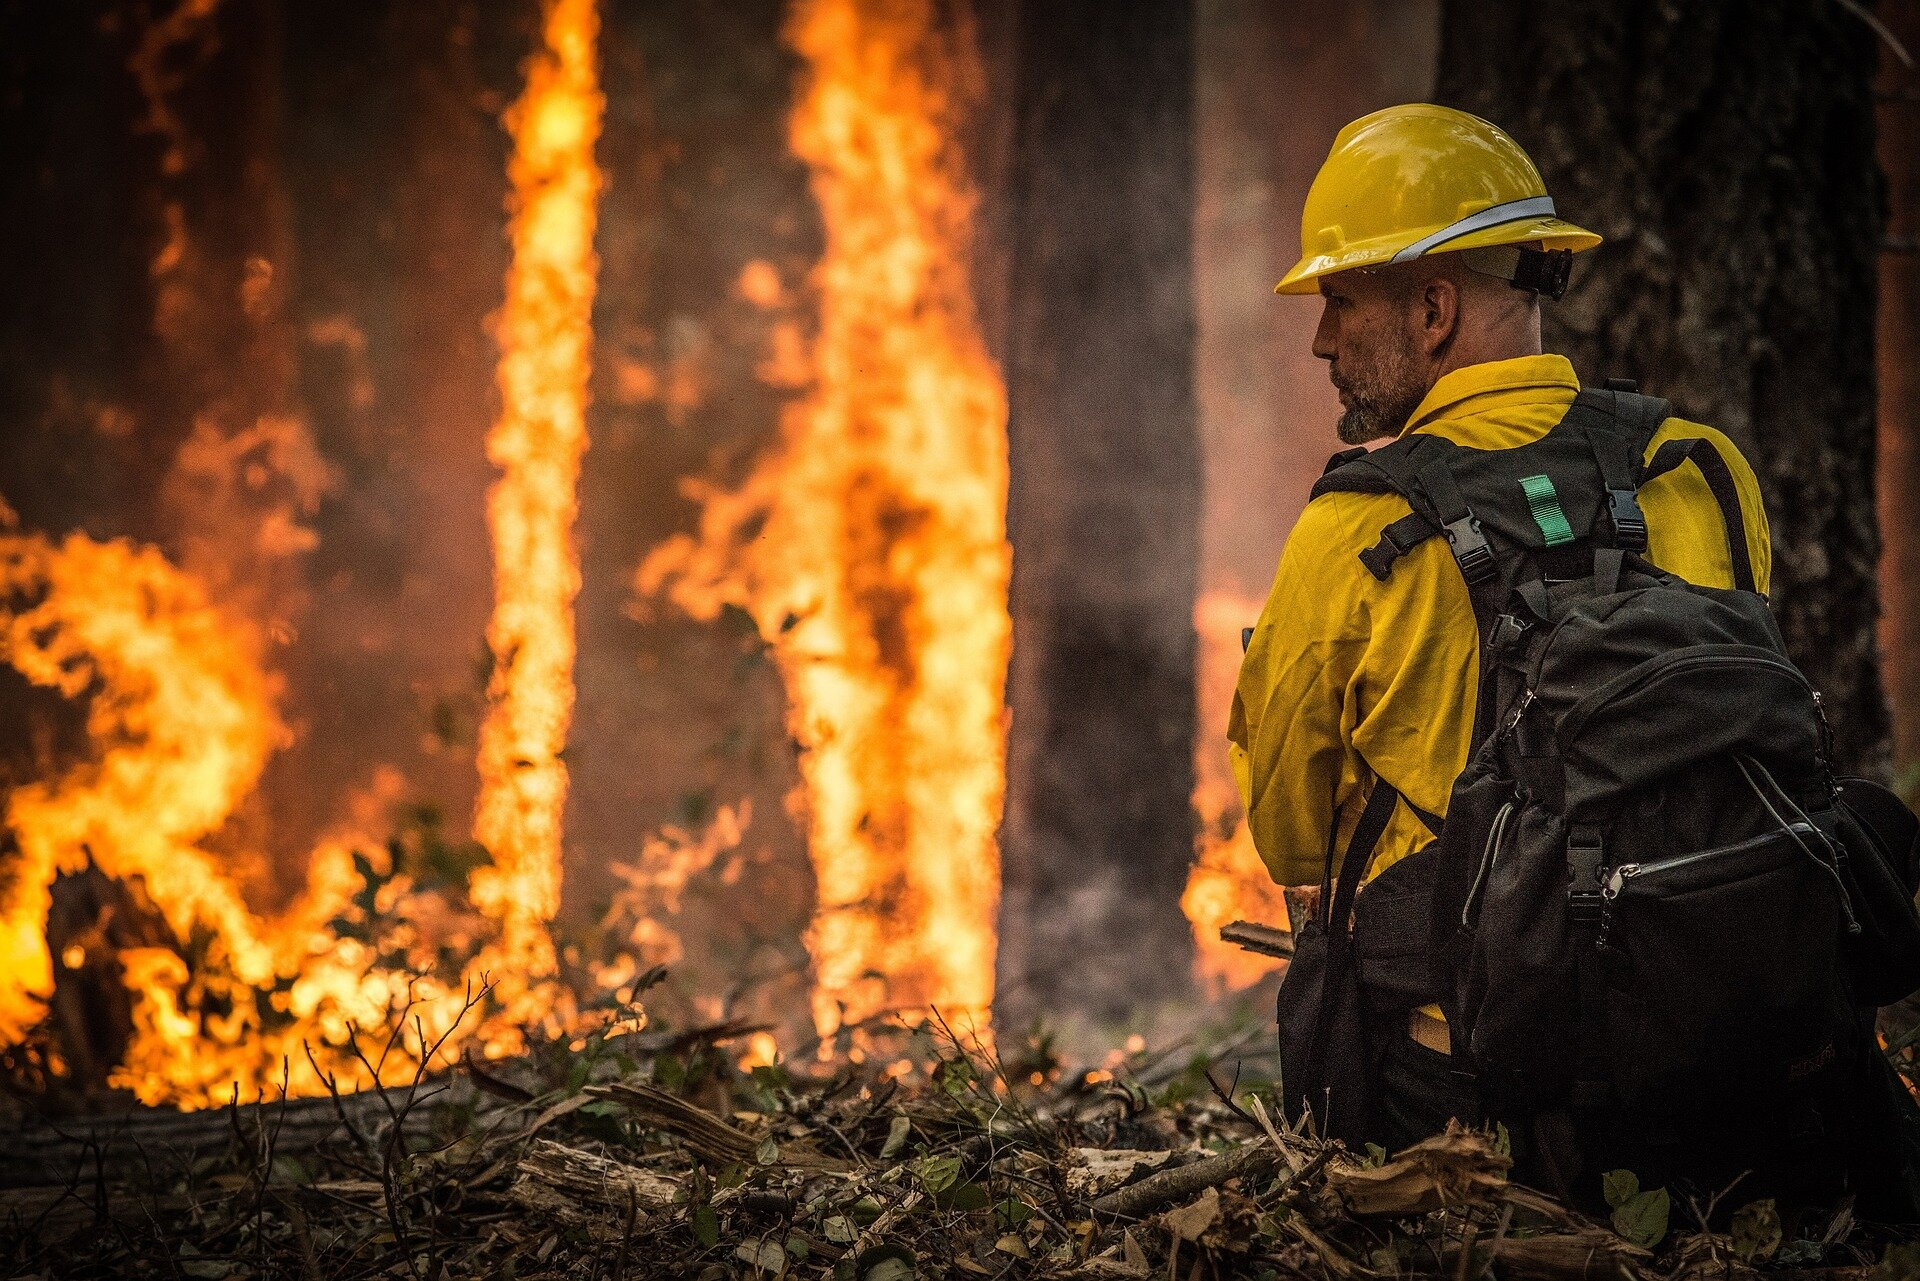 Wildfire on the rise since 1984 in Northern California's coastal ranges